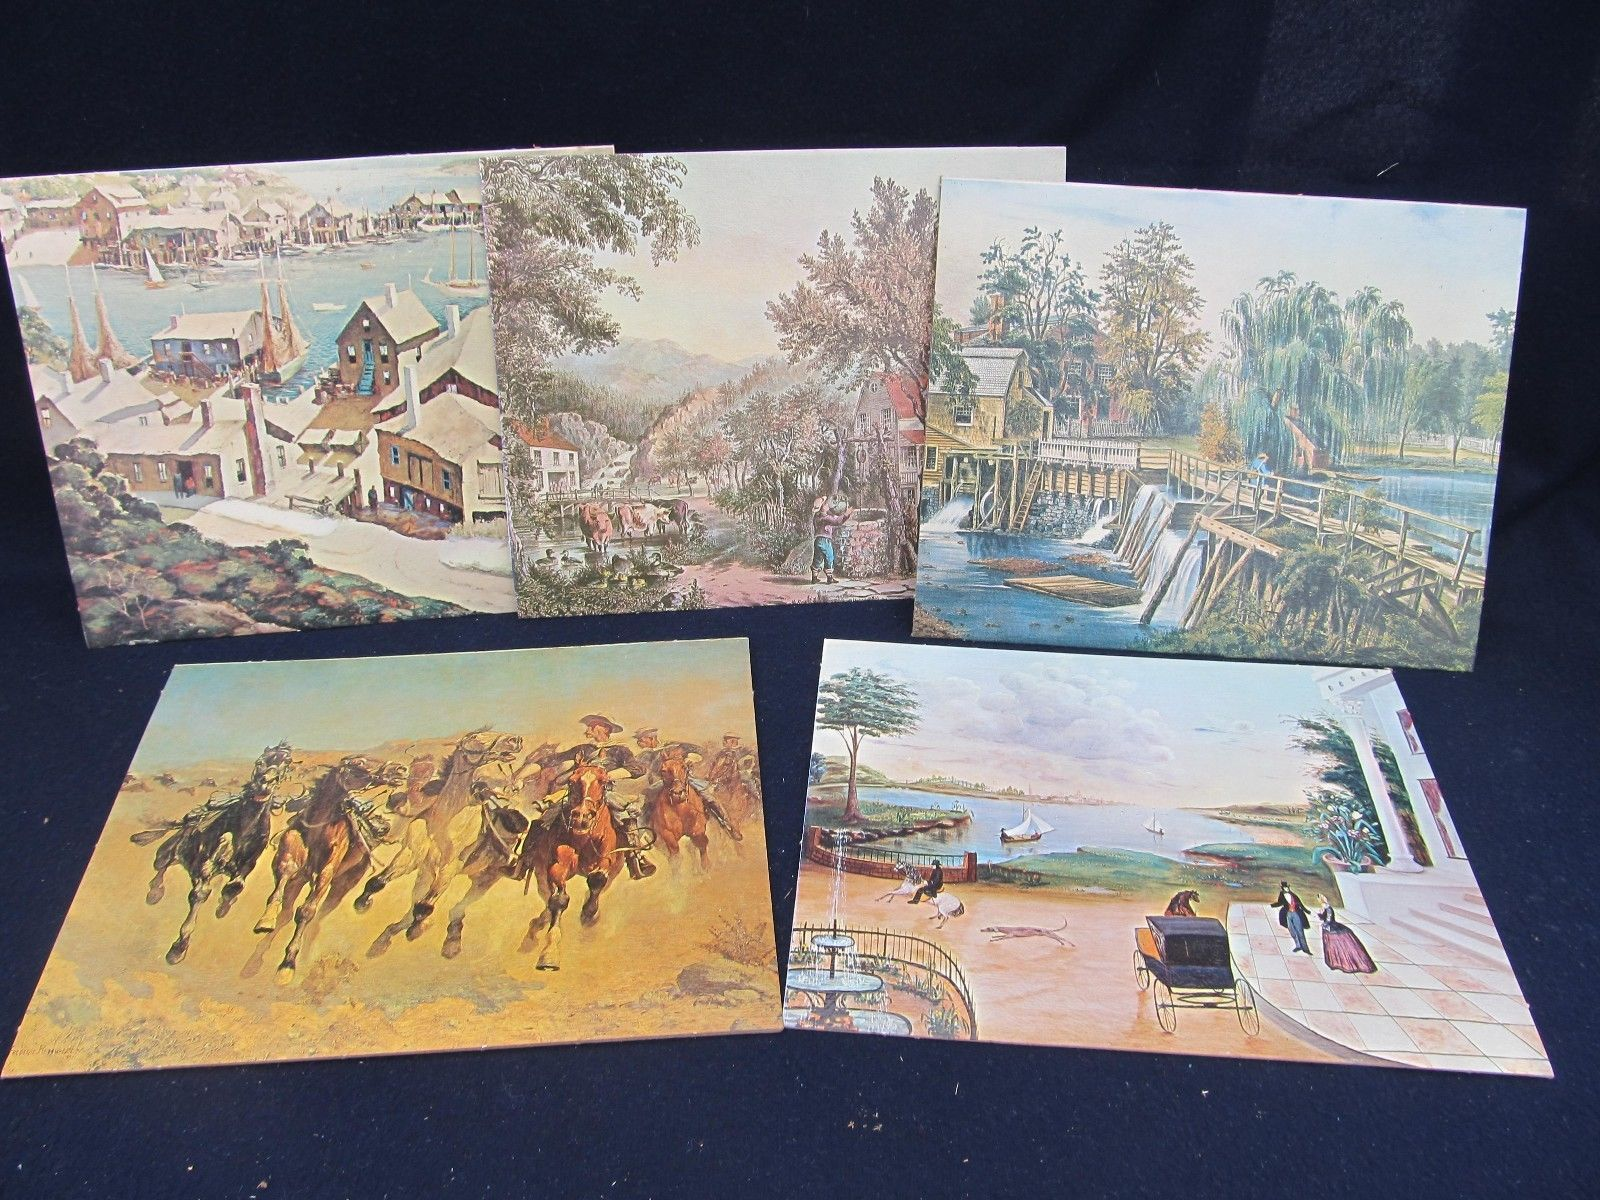 6 Medium Royale Academie Collection 1960s Brushstroke Reprints of Masters Lot